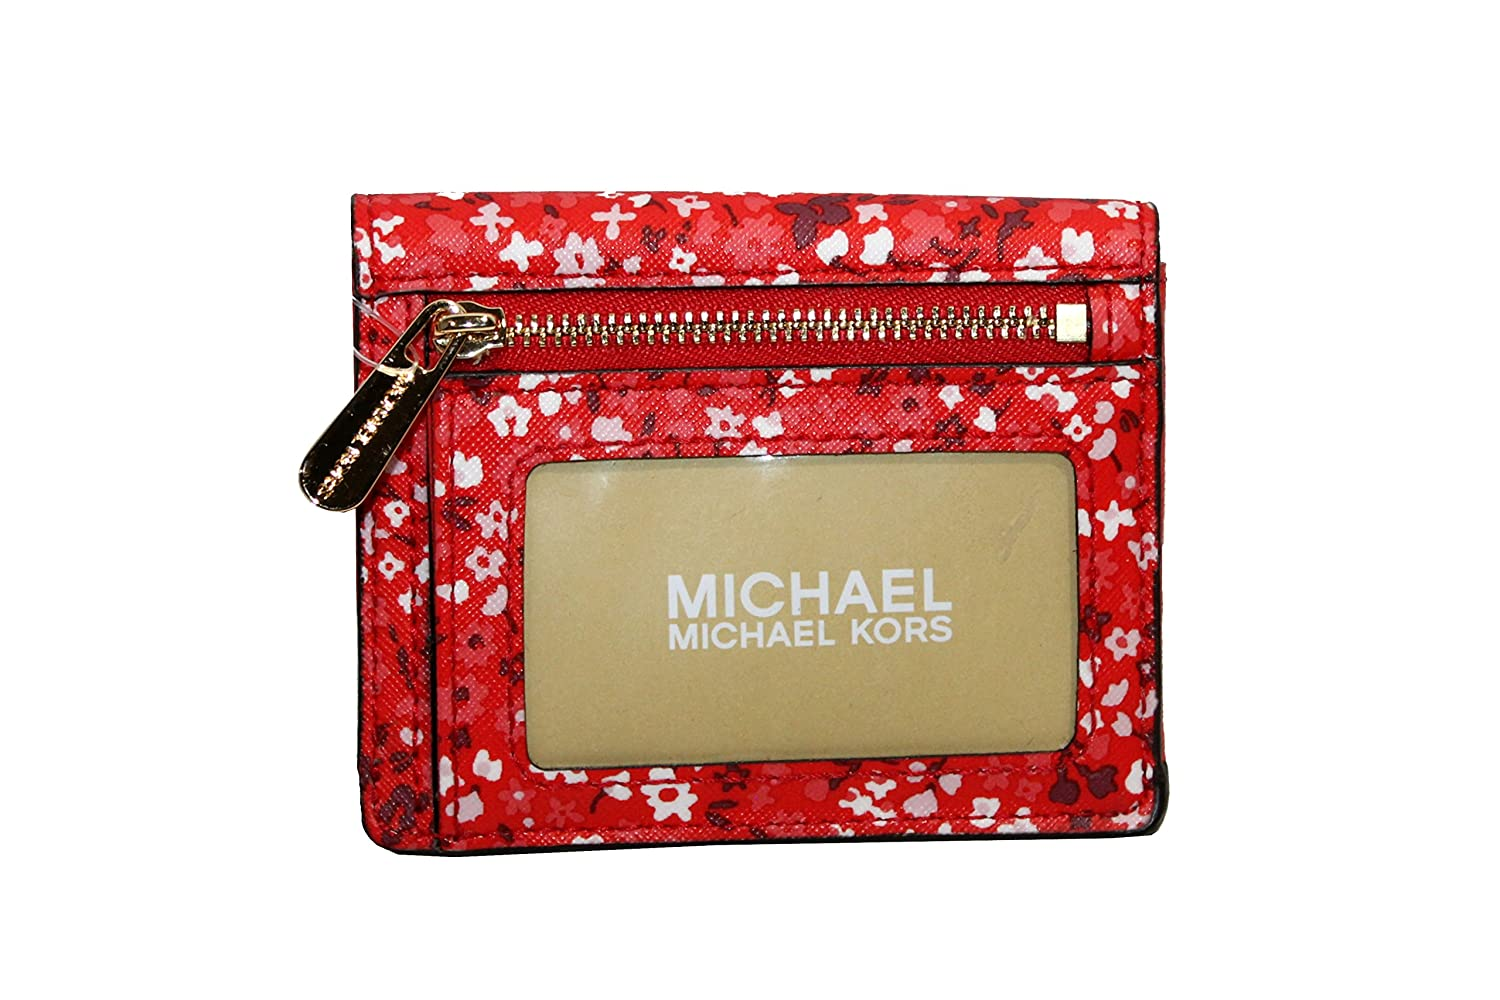 cfc1ff2ae MICHAEL Michael Kors Women's Jet Set Travel Card Case ID holder Printed  Leather (Black/darkBrown) at Amazon Women's Clothing store: